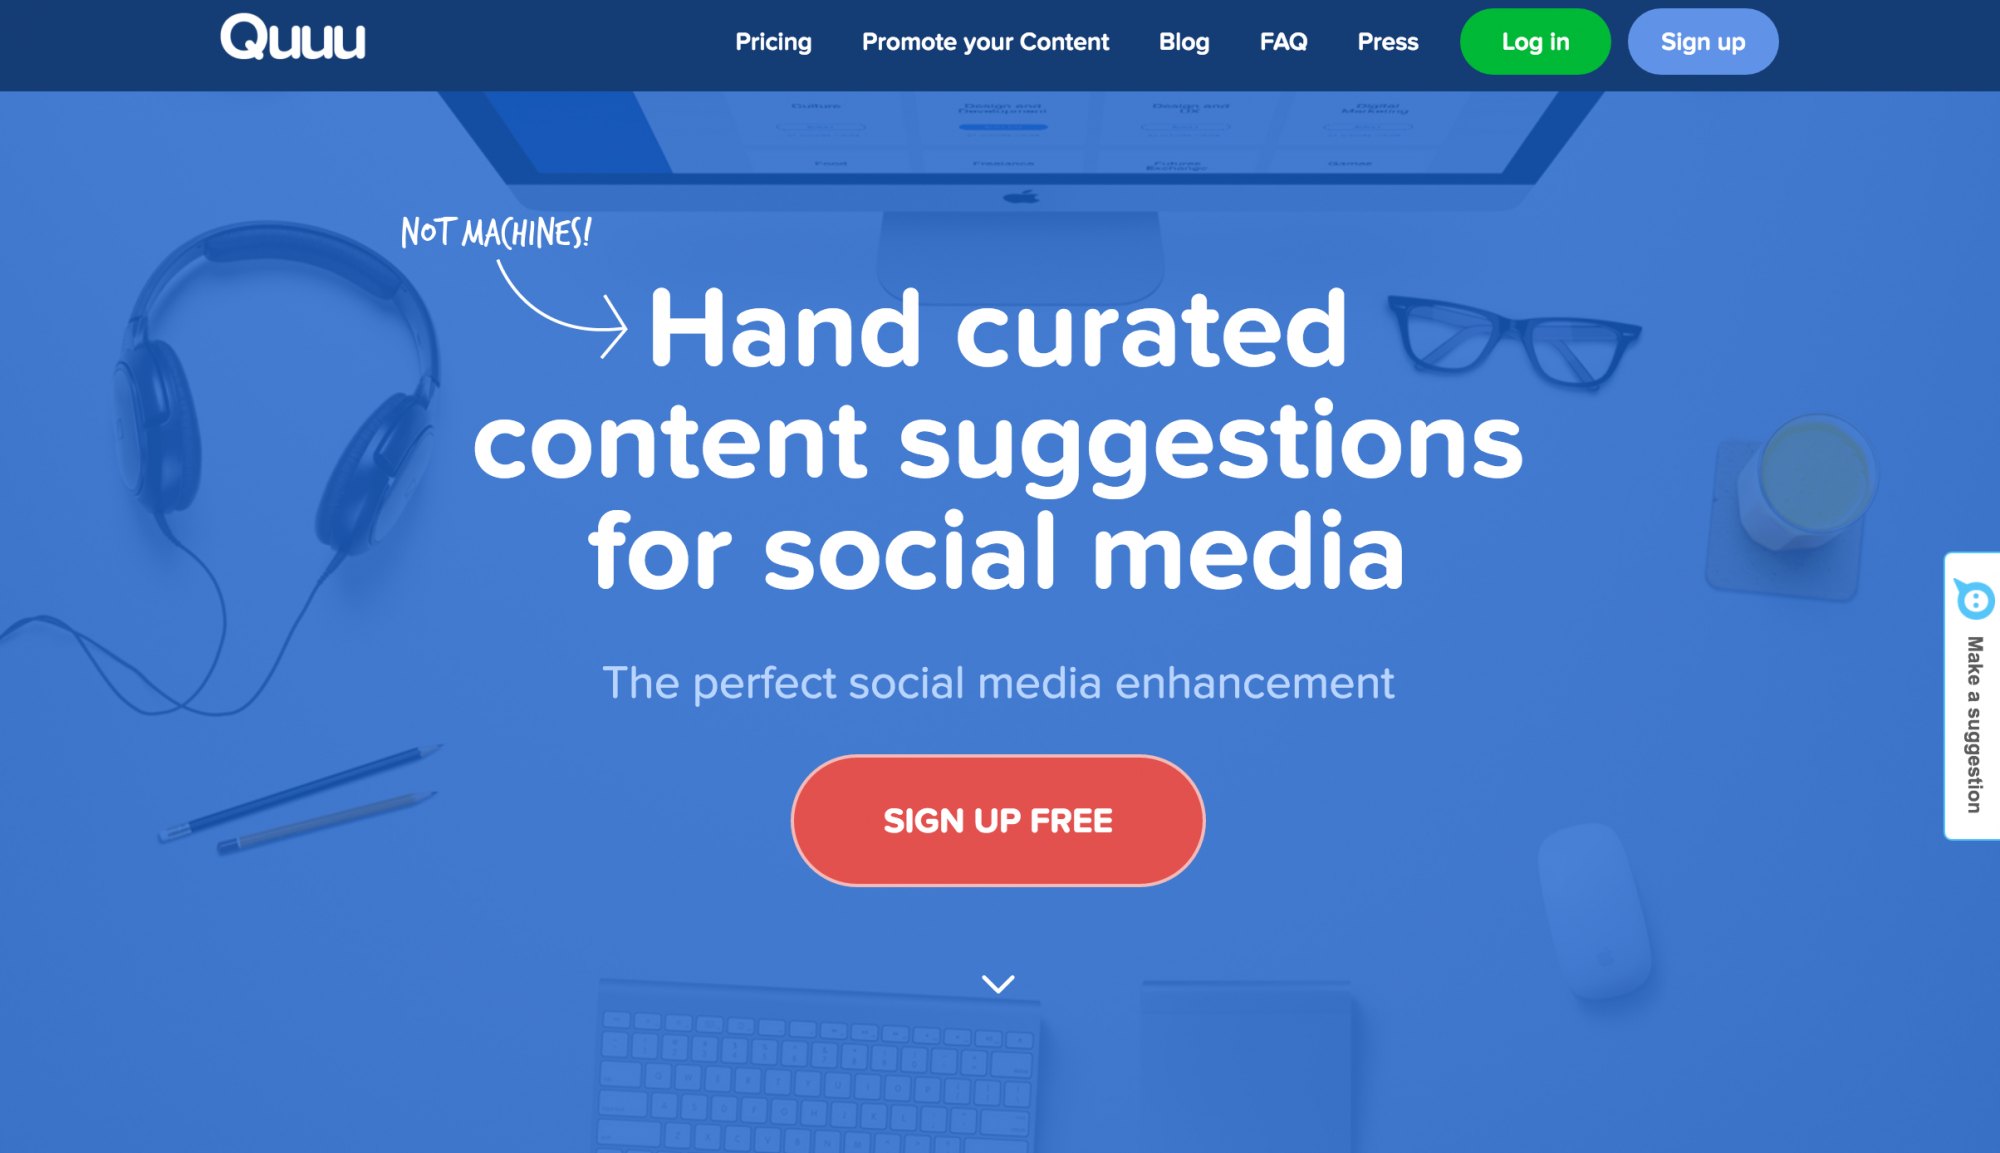 Quuu – Hand curated content suggestions for social media